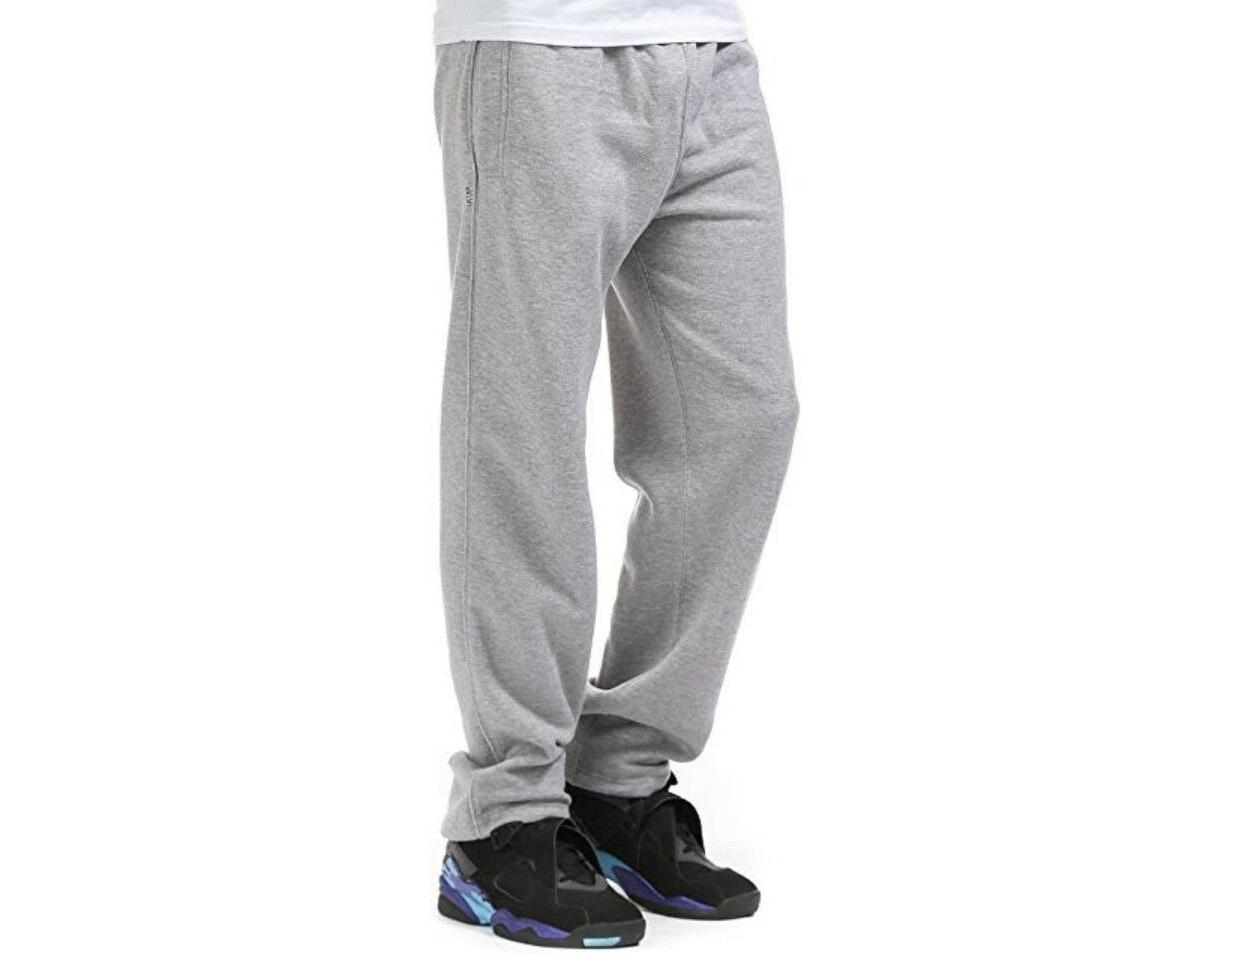 PRO SWEAT JOGGERS COMFORT MEN'S FLEECE PANT S-7XL